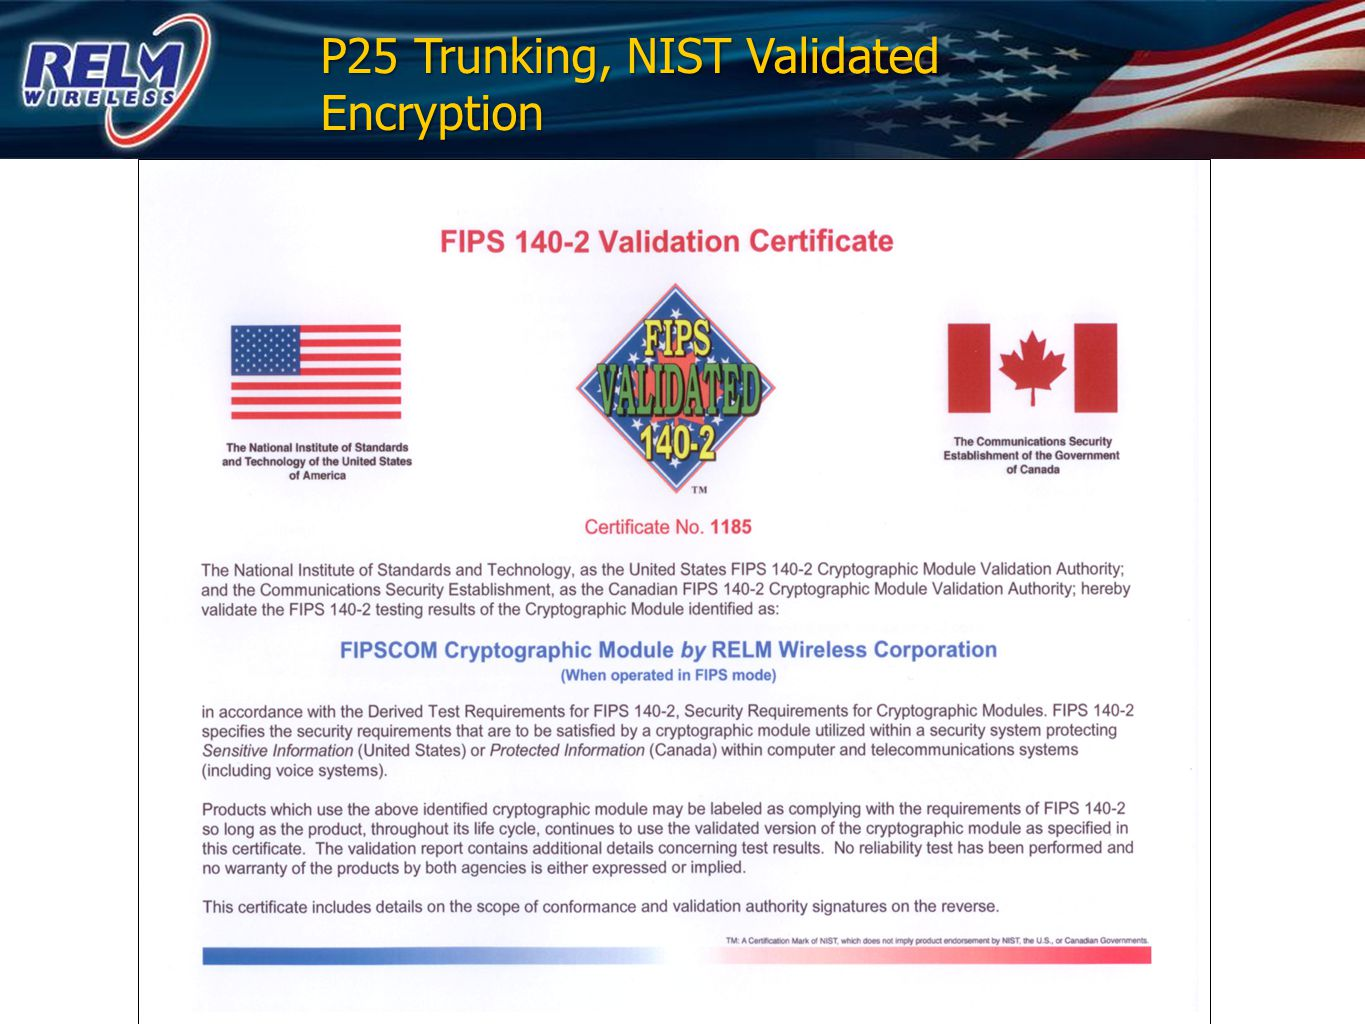 P25 Trunking, NIST Validated Encryption